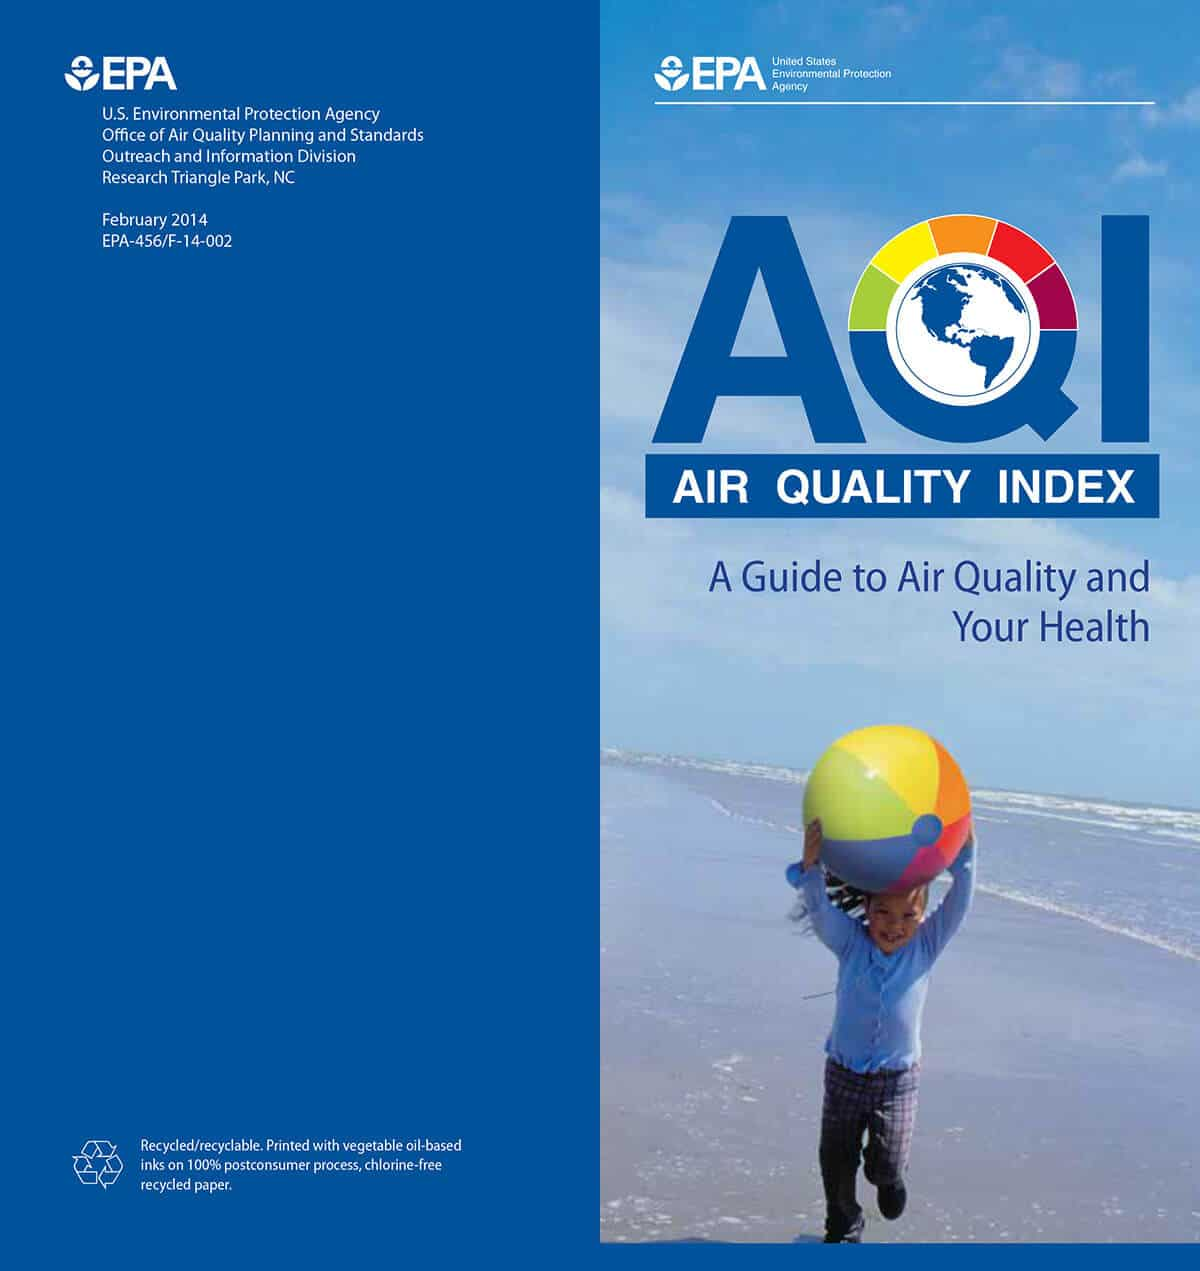 AQI - A Guide to Air Quality and Your Health